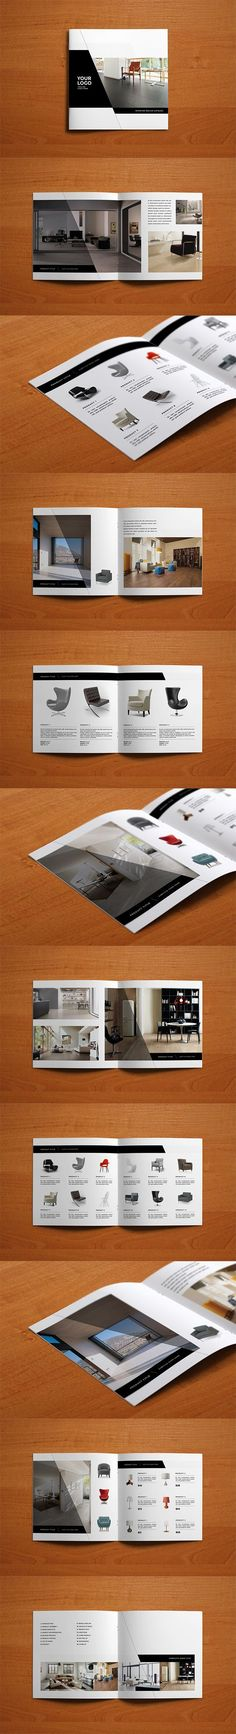 Minimal Interior Design Catalog. Download here: http://graphicriver.net/item/minimal-interior-design-catalog/9849569?ref=abradesign #design #brochure #catalog: